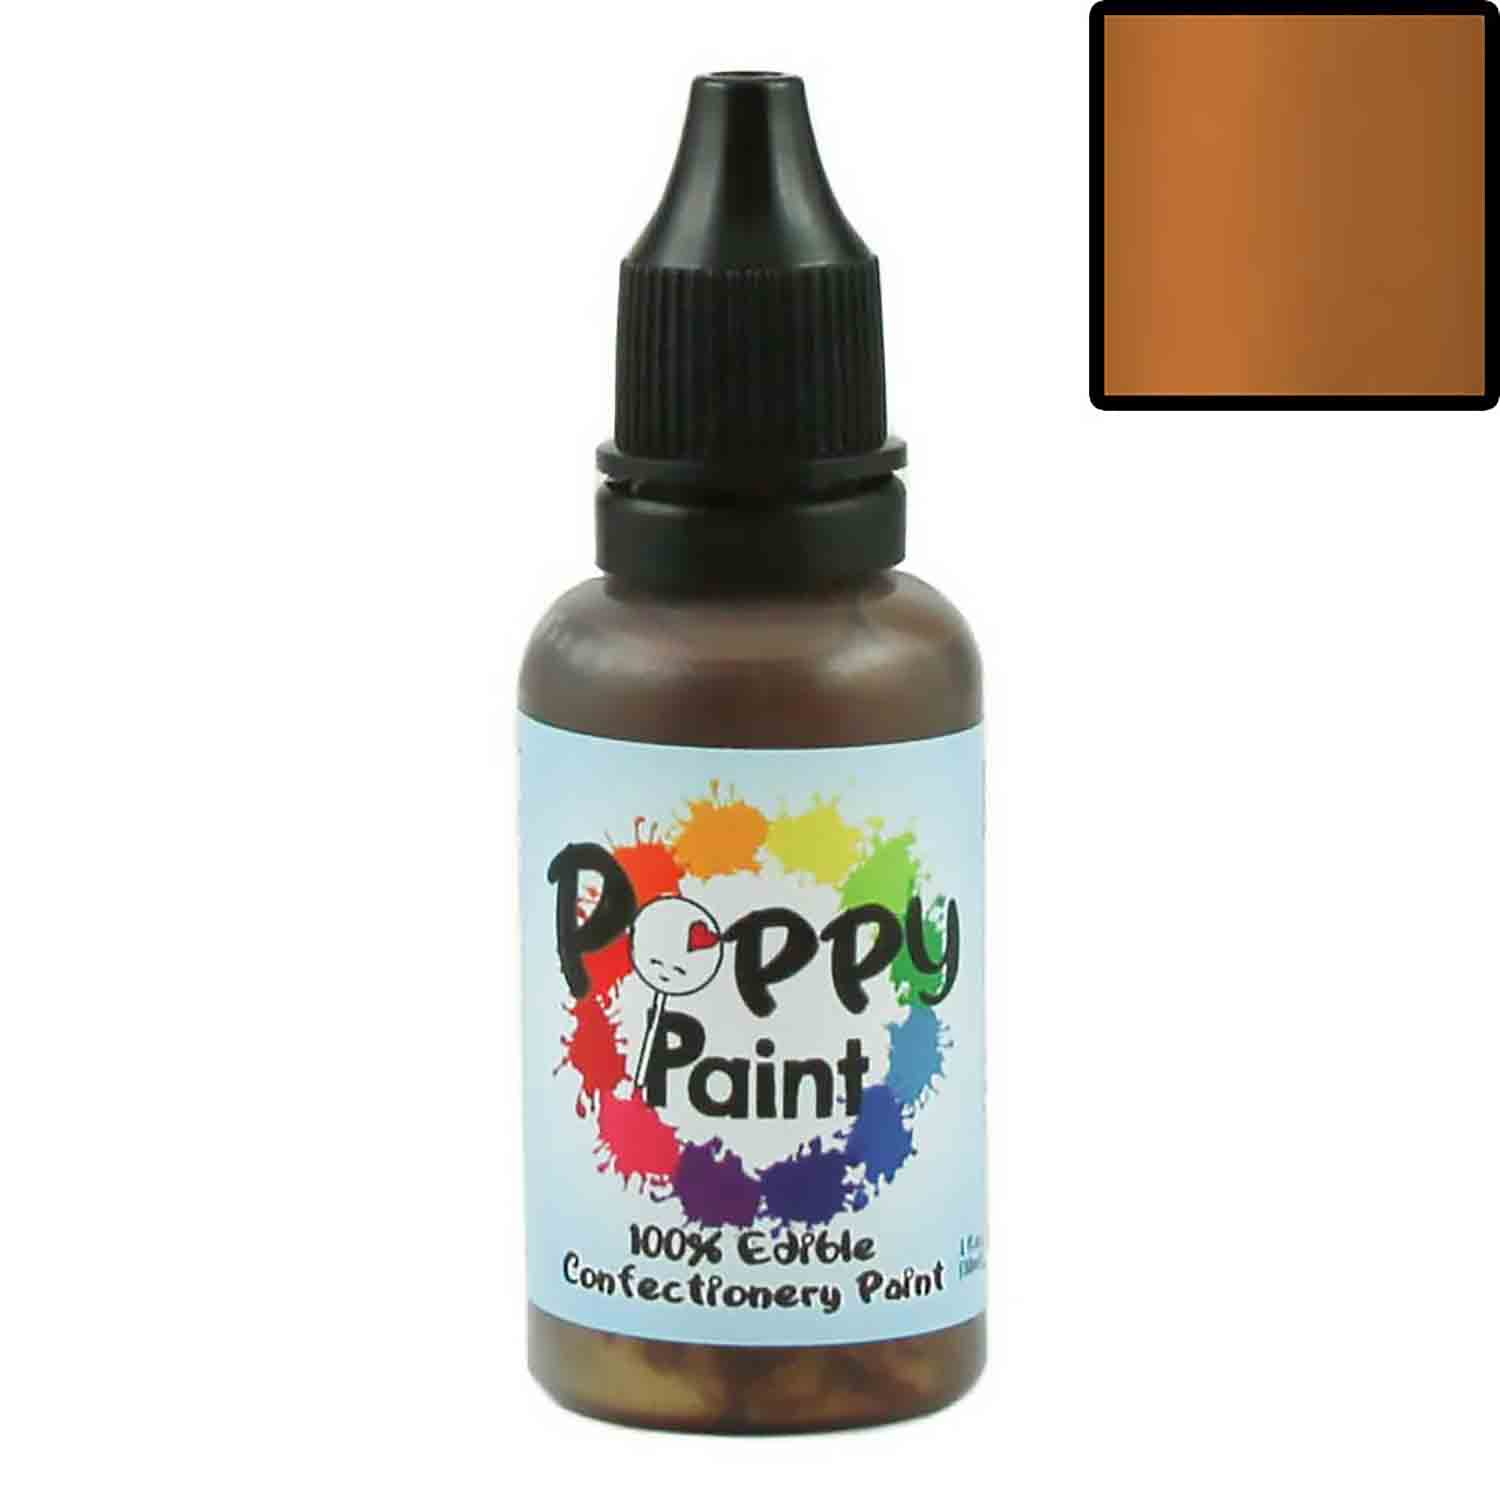 Bronze Pearlescent Poppy Paint 100% Edible Confectionery Paint